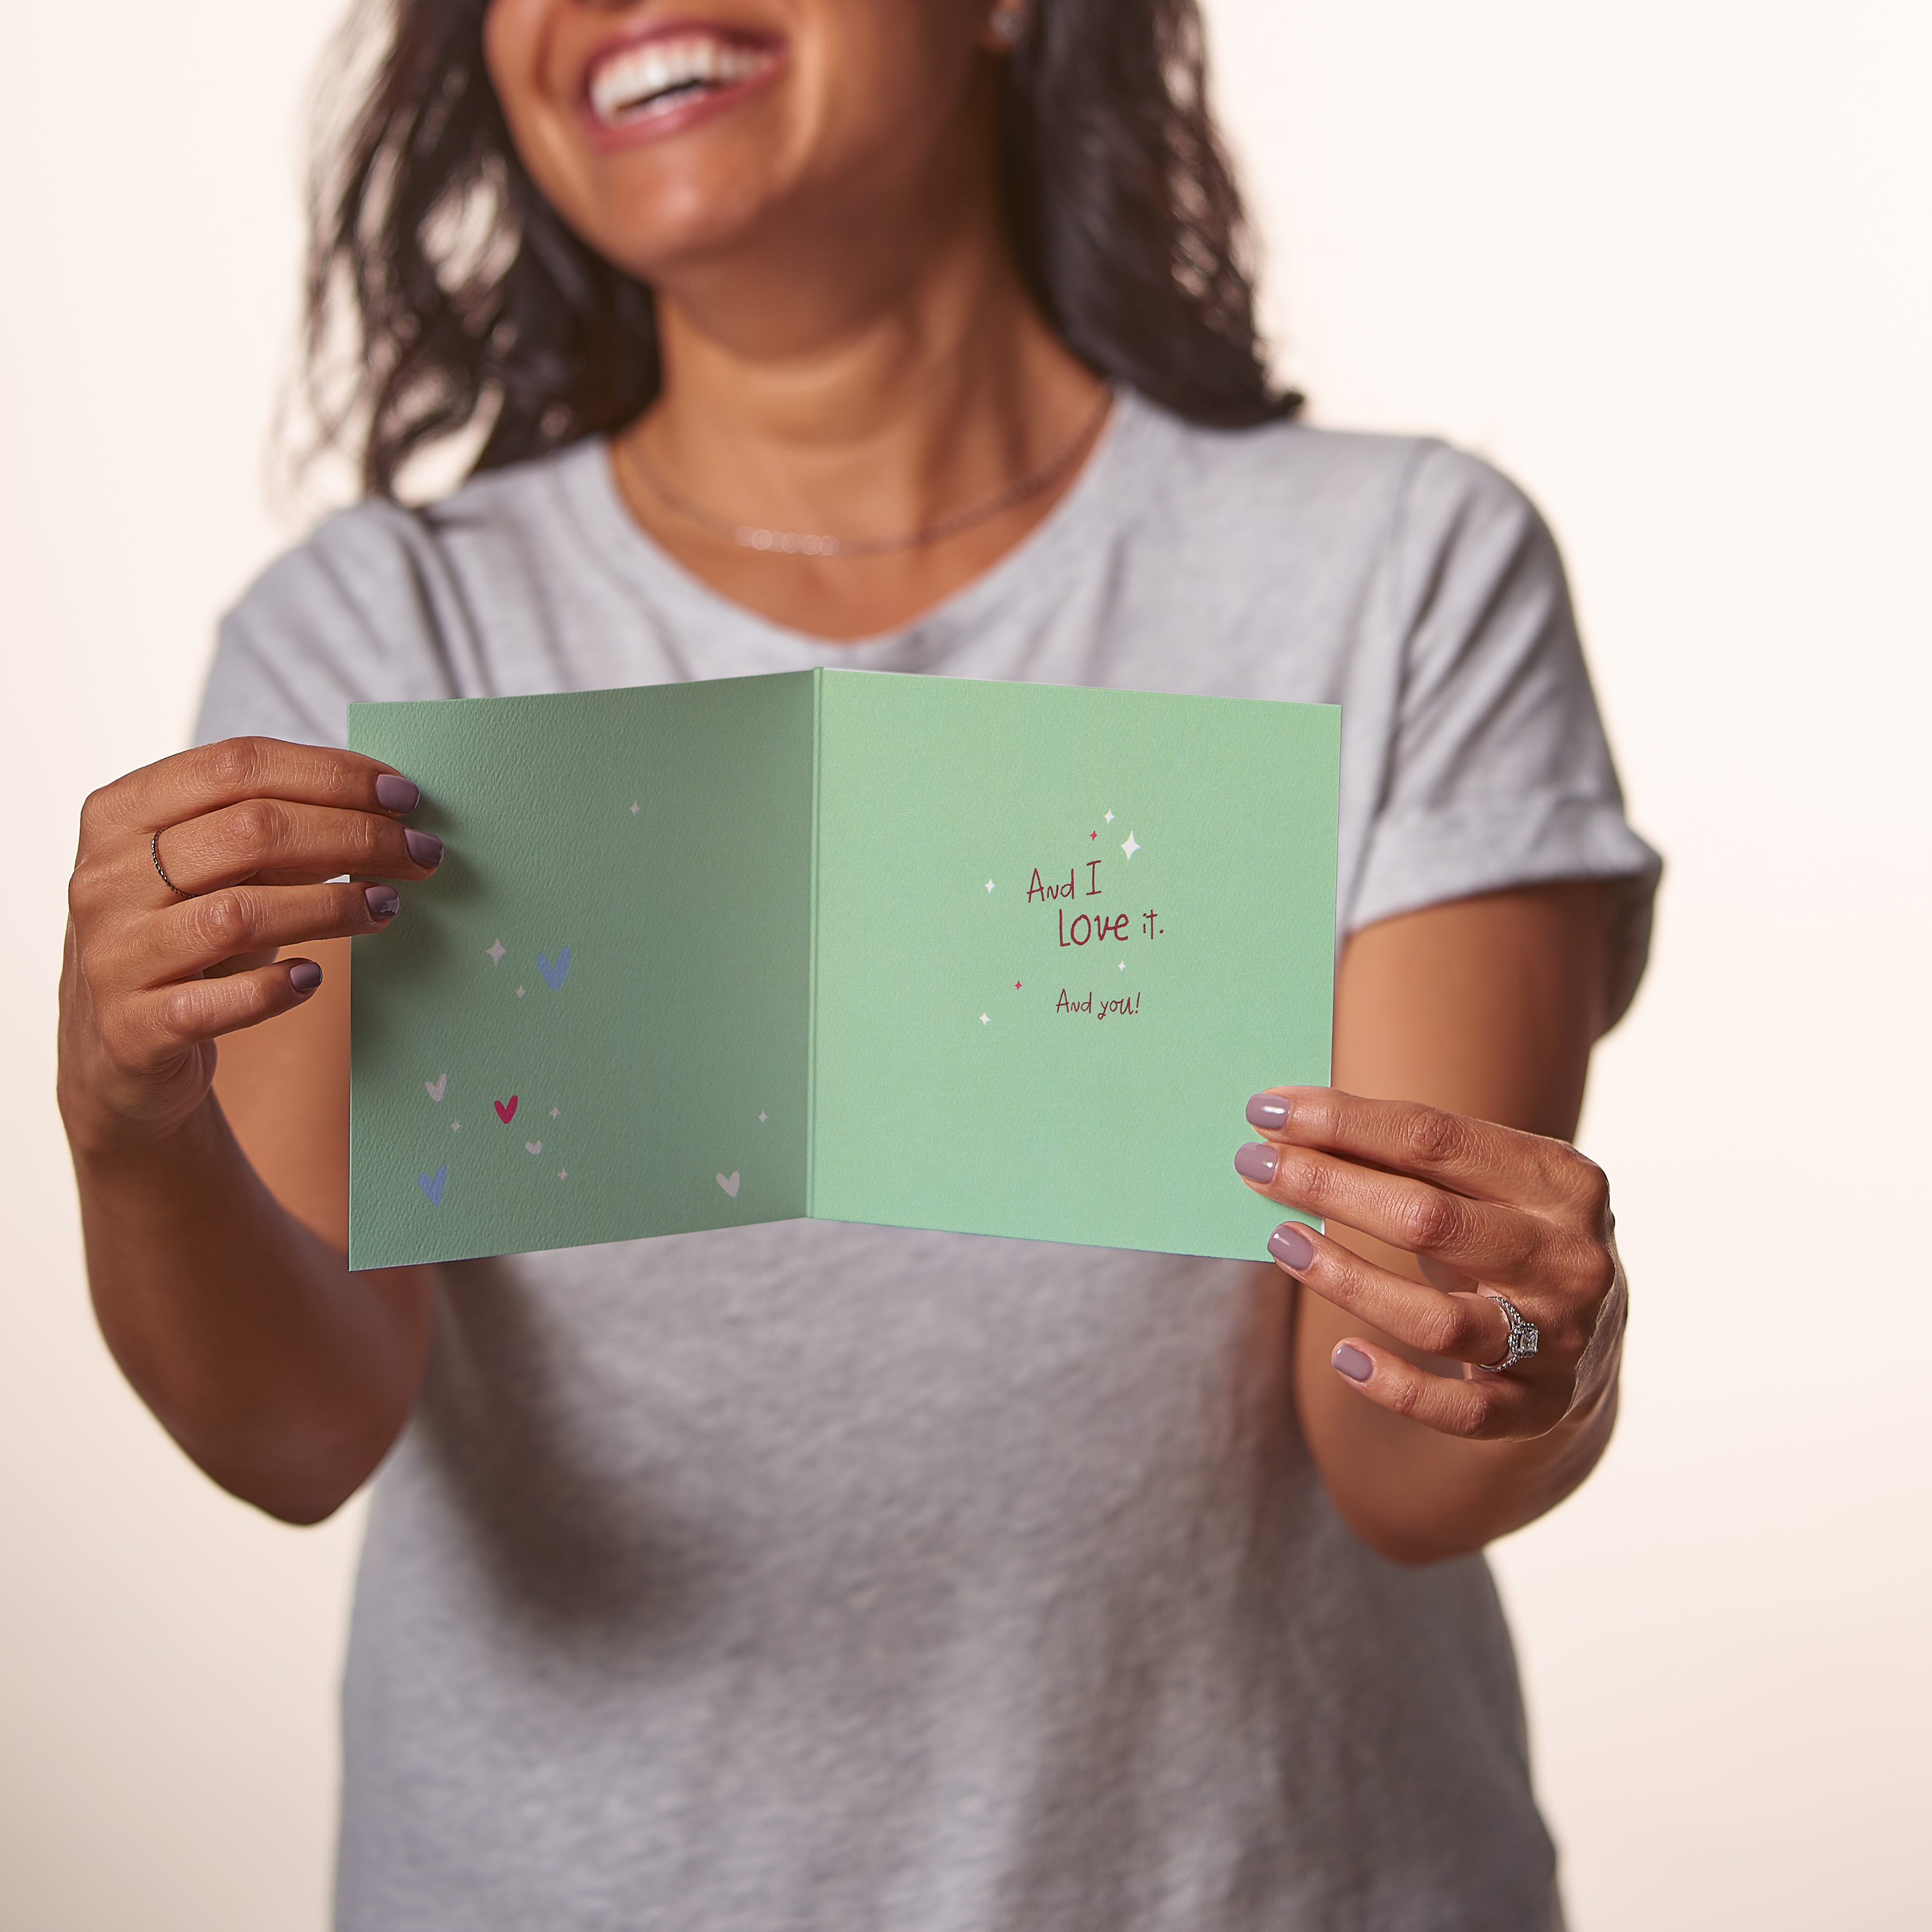 Obnoxiously Cute Greeting Card for Couple - Engagement, Wedding, Anniversary image